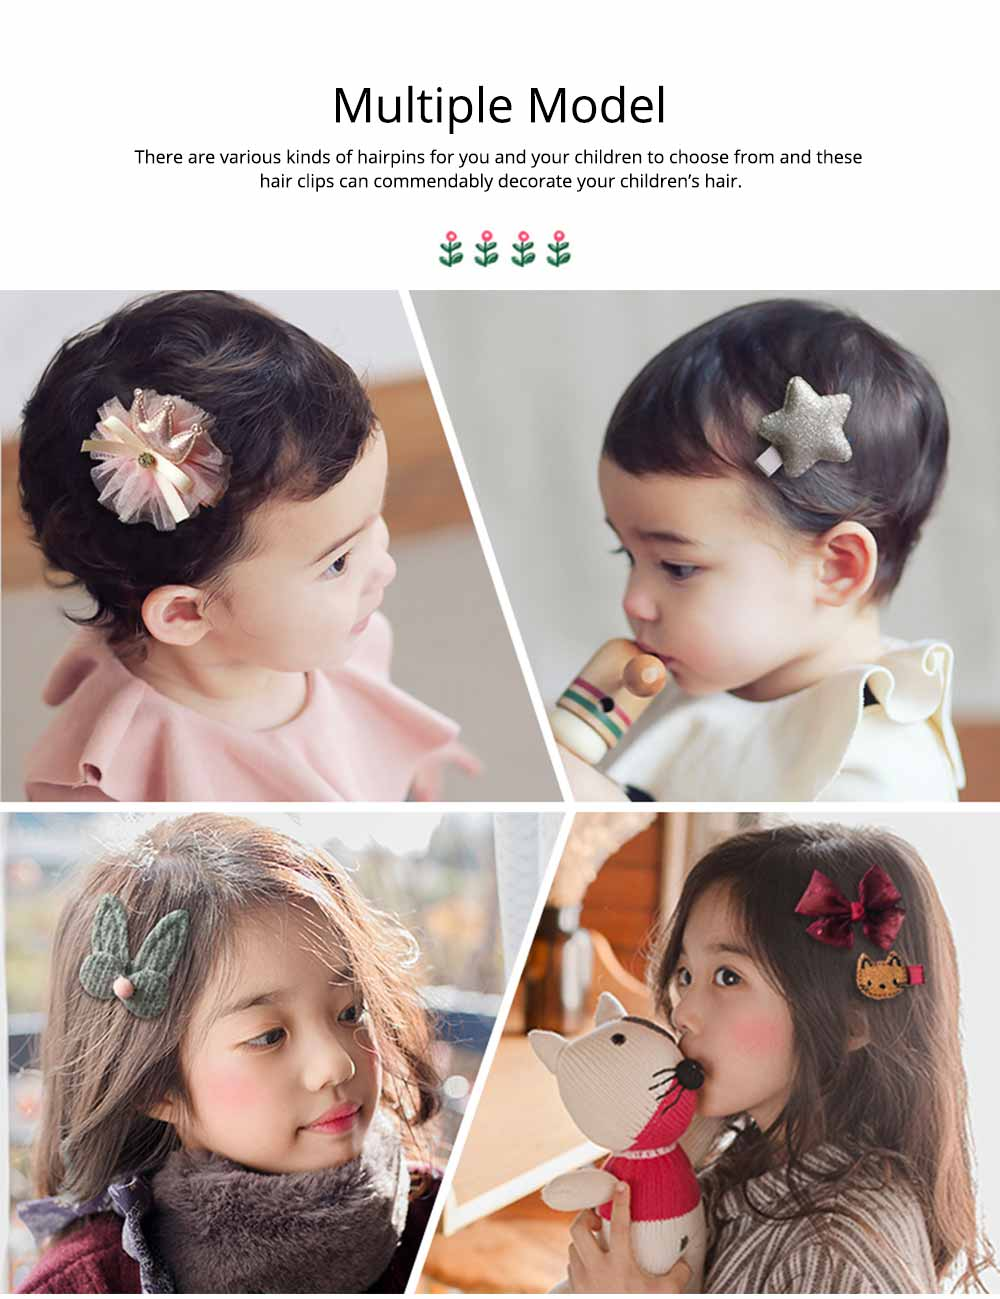 Stylish Cartoon Bow Hair Accessories Set for Girl, 18 PCS Hair Decoration Barrette New Year Birthday Gift Present Award for Girls Children 8